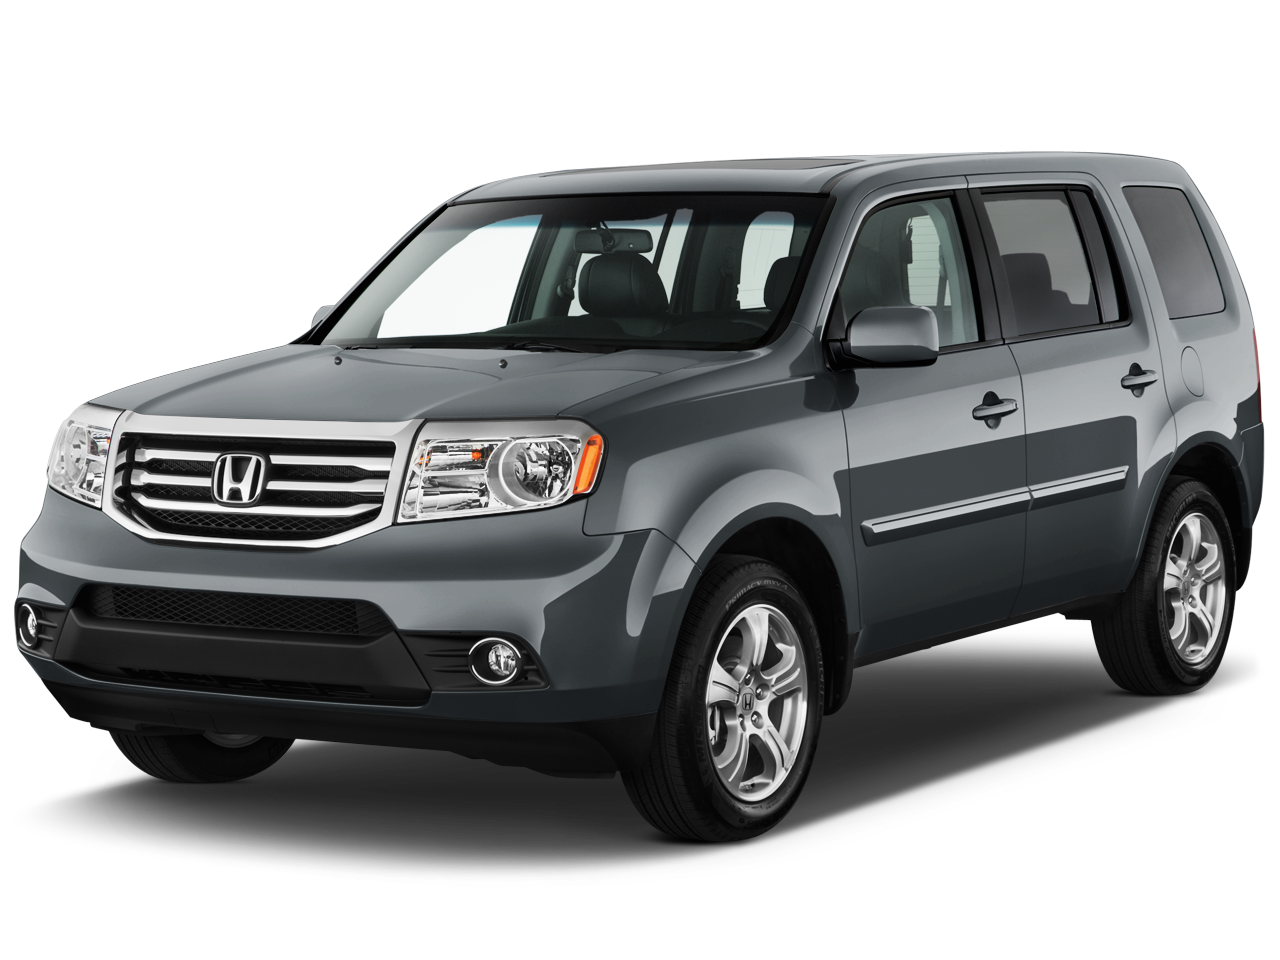 Used one owner 2014 honda pilot ex l near massillon oh for 2014 honda pilot gas mileage